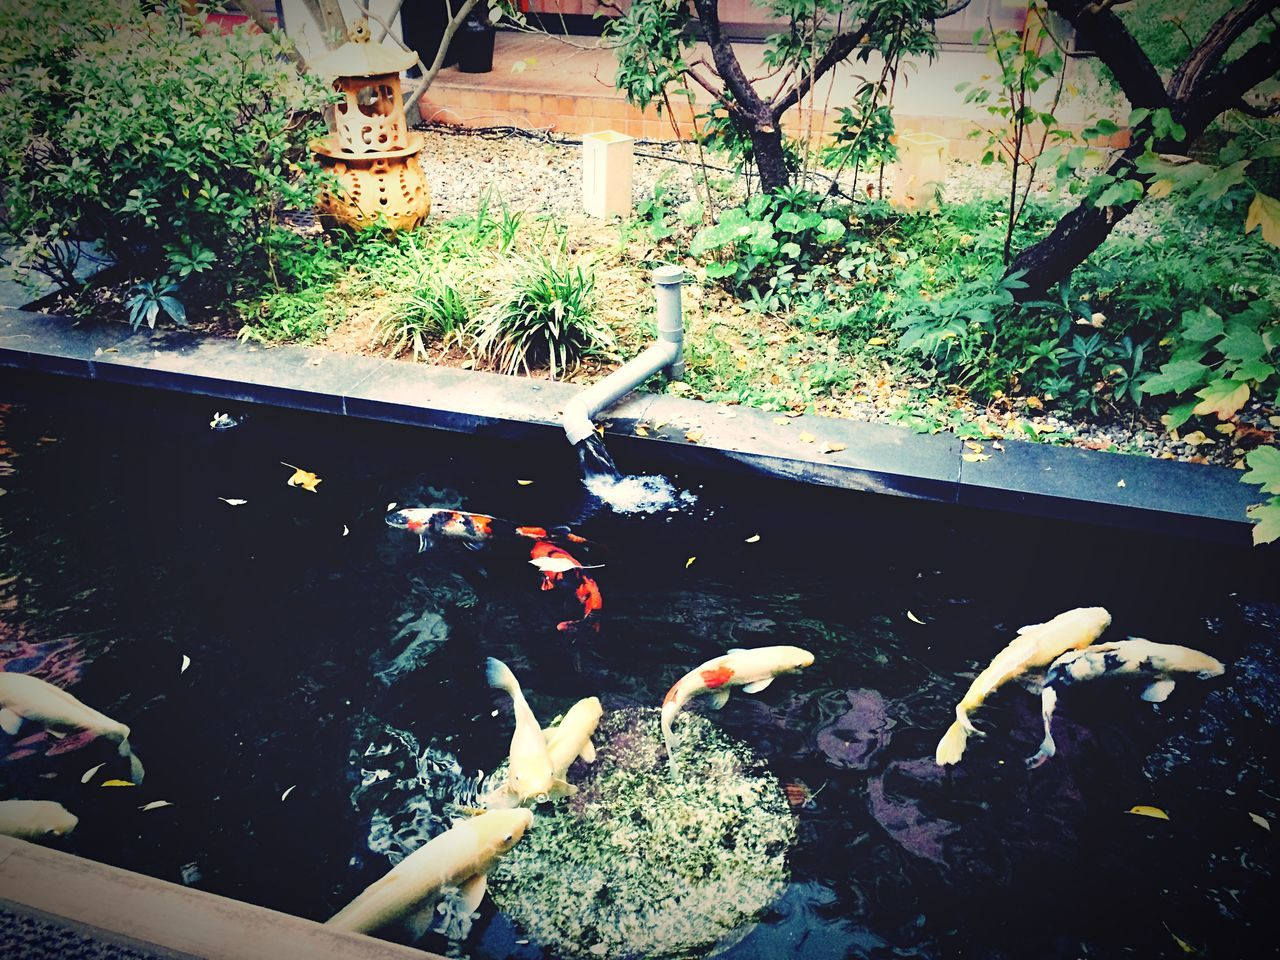 water, animal themes, high angle view, nature, koi carp, fish, animals in the wild, swimming, sea life, carp, no people, plant, large group of animals, outdoors, day, beauty in nature, close-up